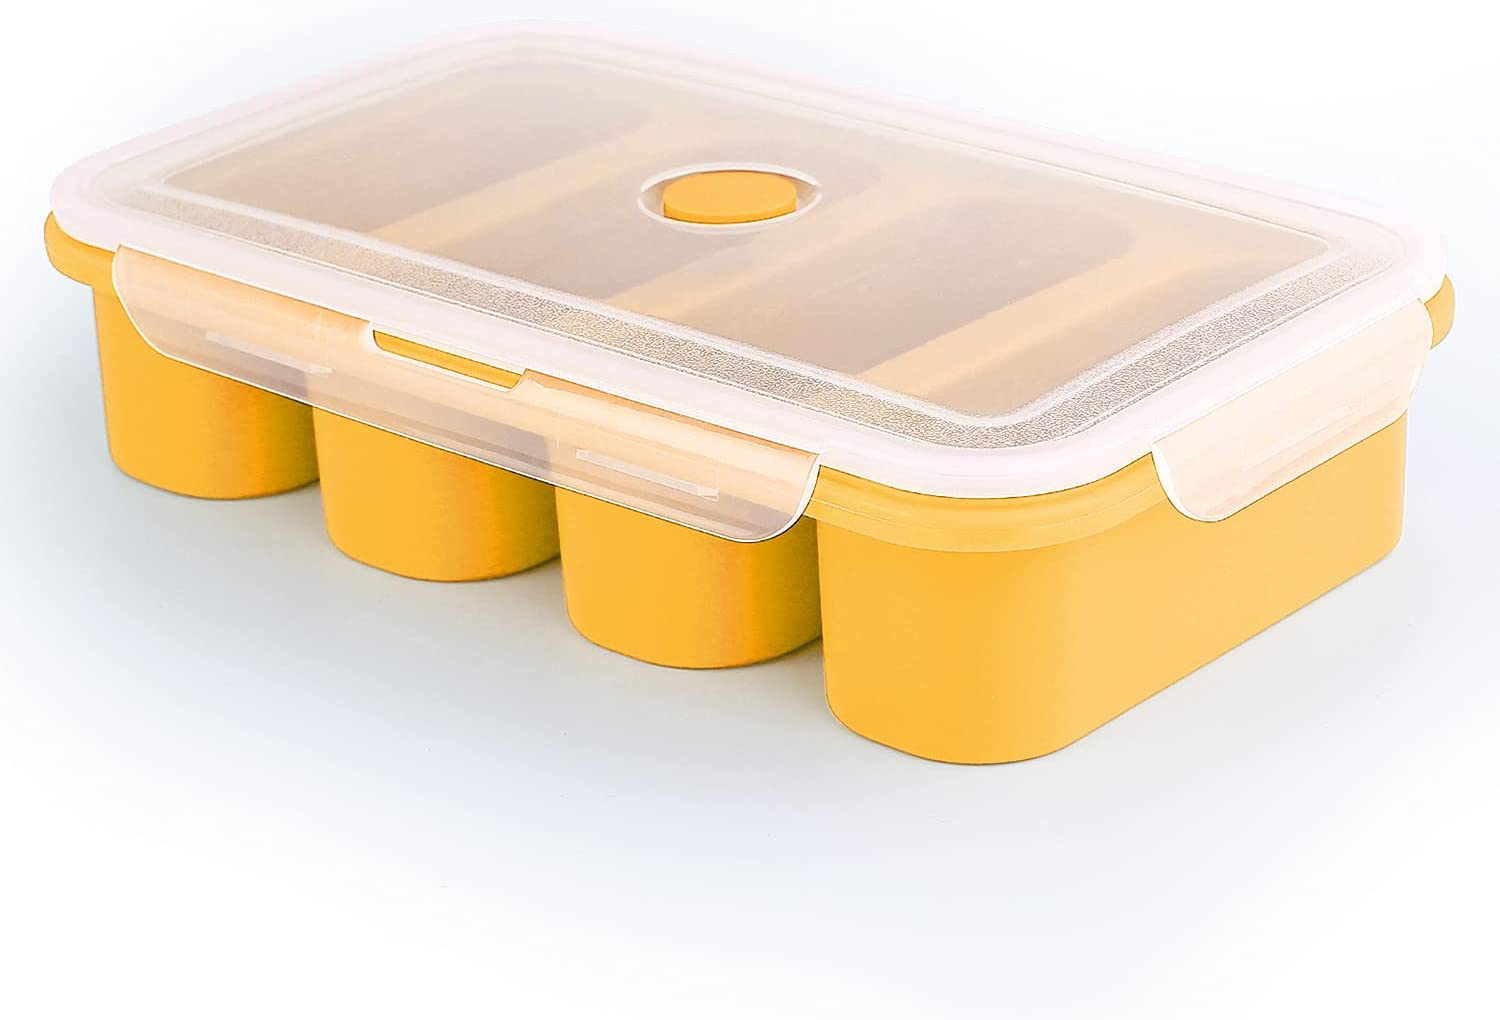 Silicone Freezer Trays Extra Large Soup Super Cube Ice Cube Tray Food Freezing Molds 4 Giant Storage for Food Meal Sauce with Lid (4 cubes, Yellow)